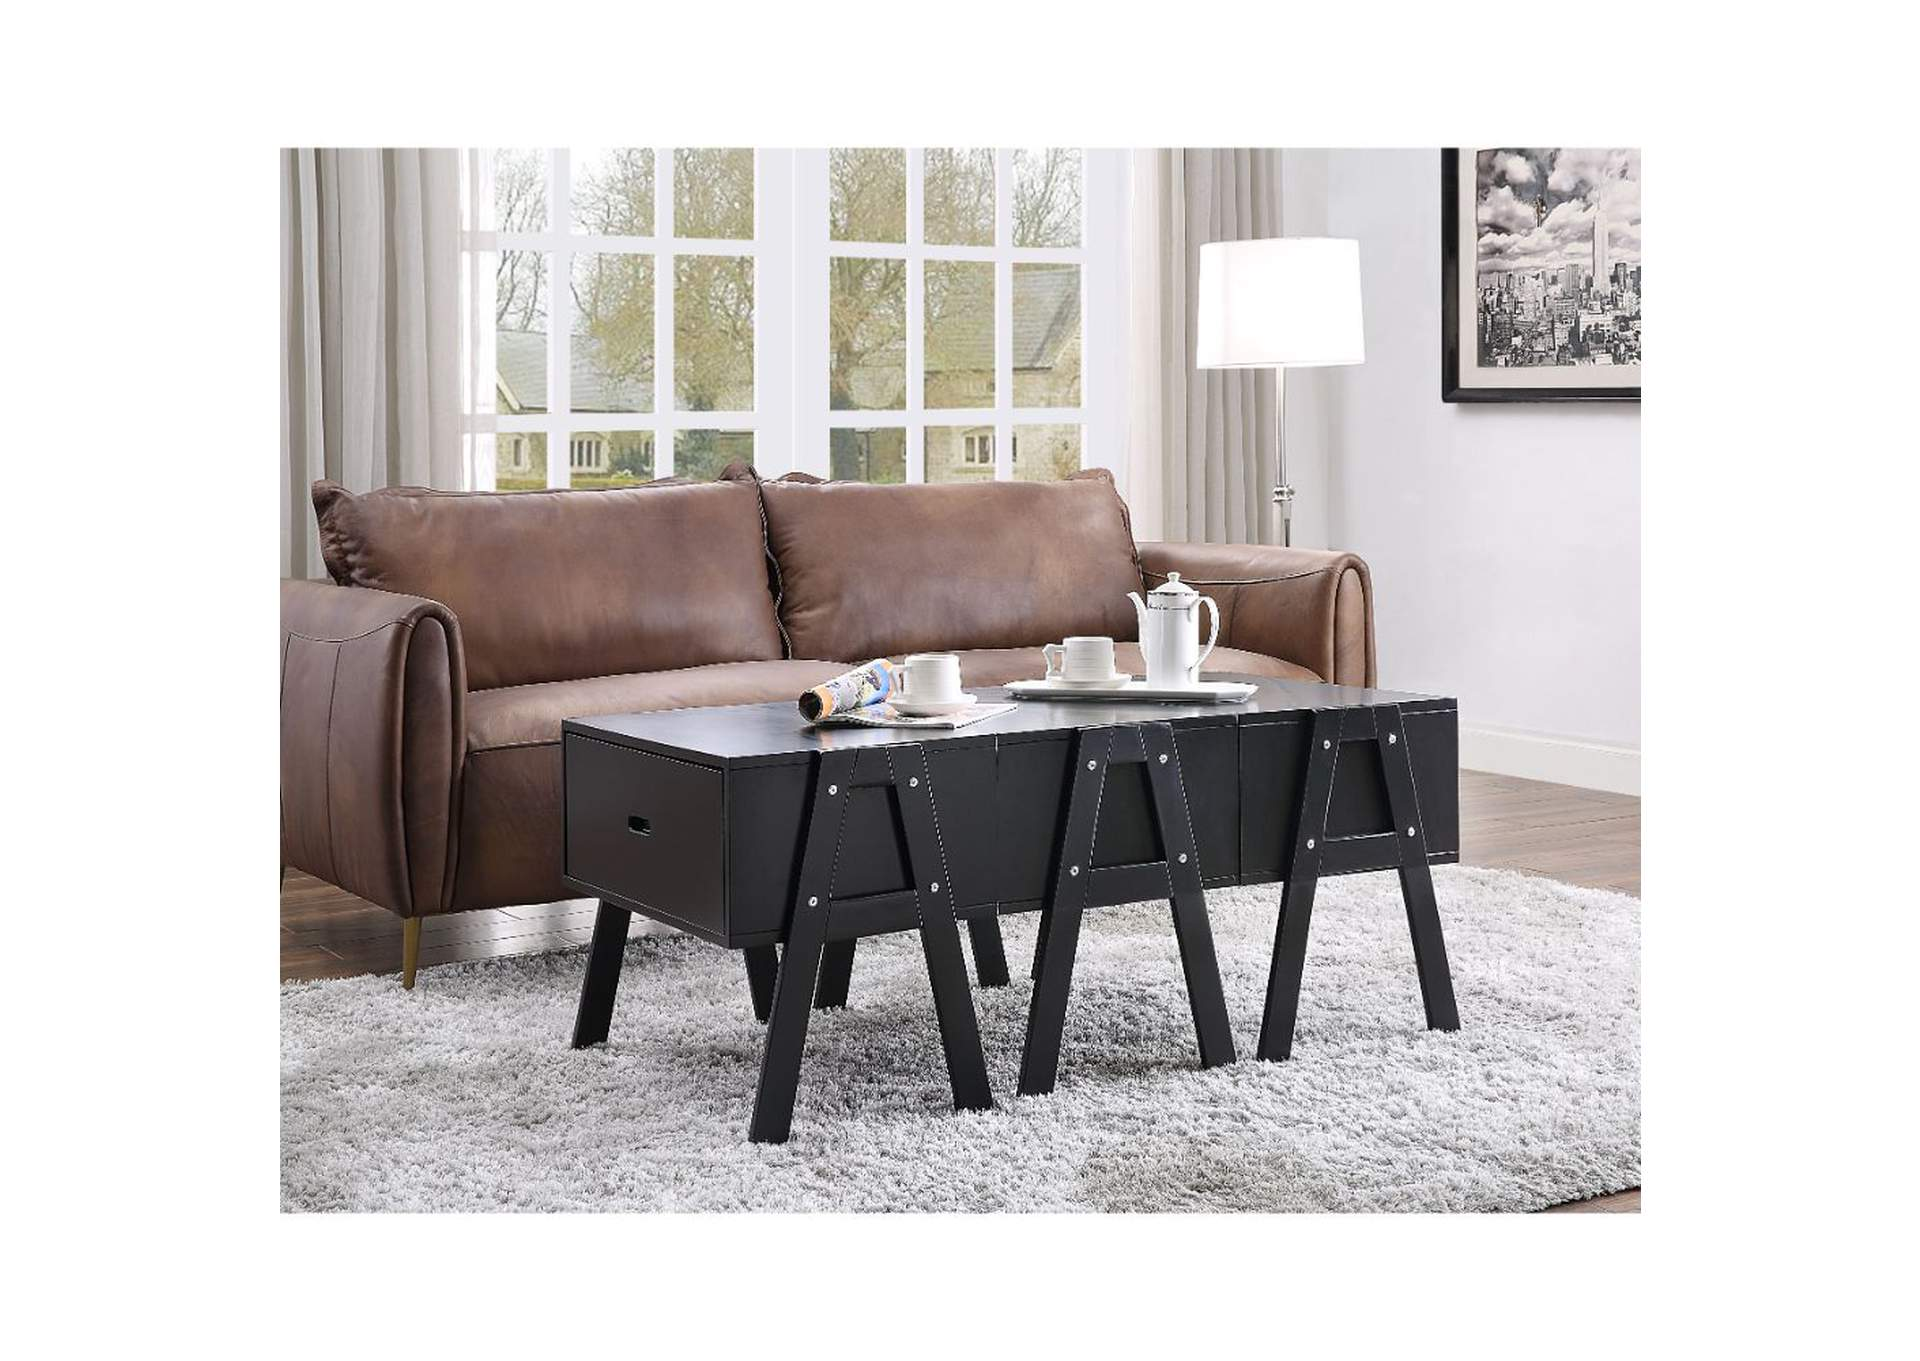 Lonny Black Coffee Table,Acme